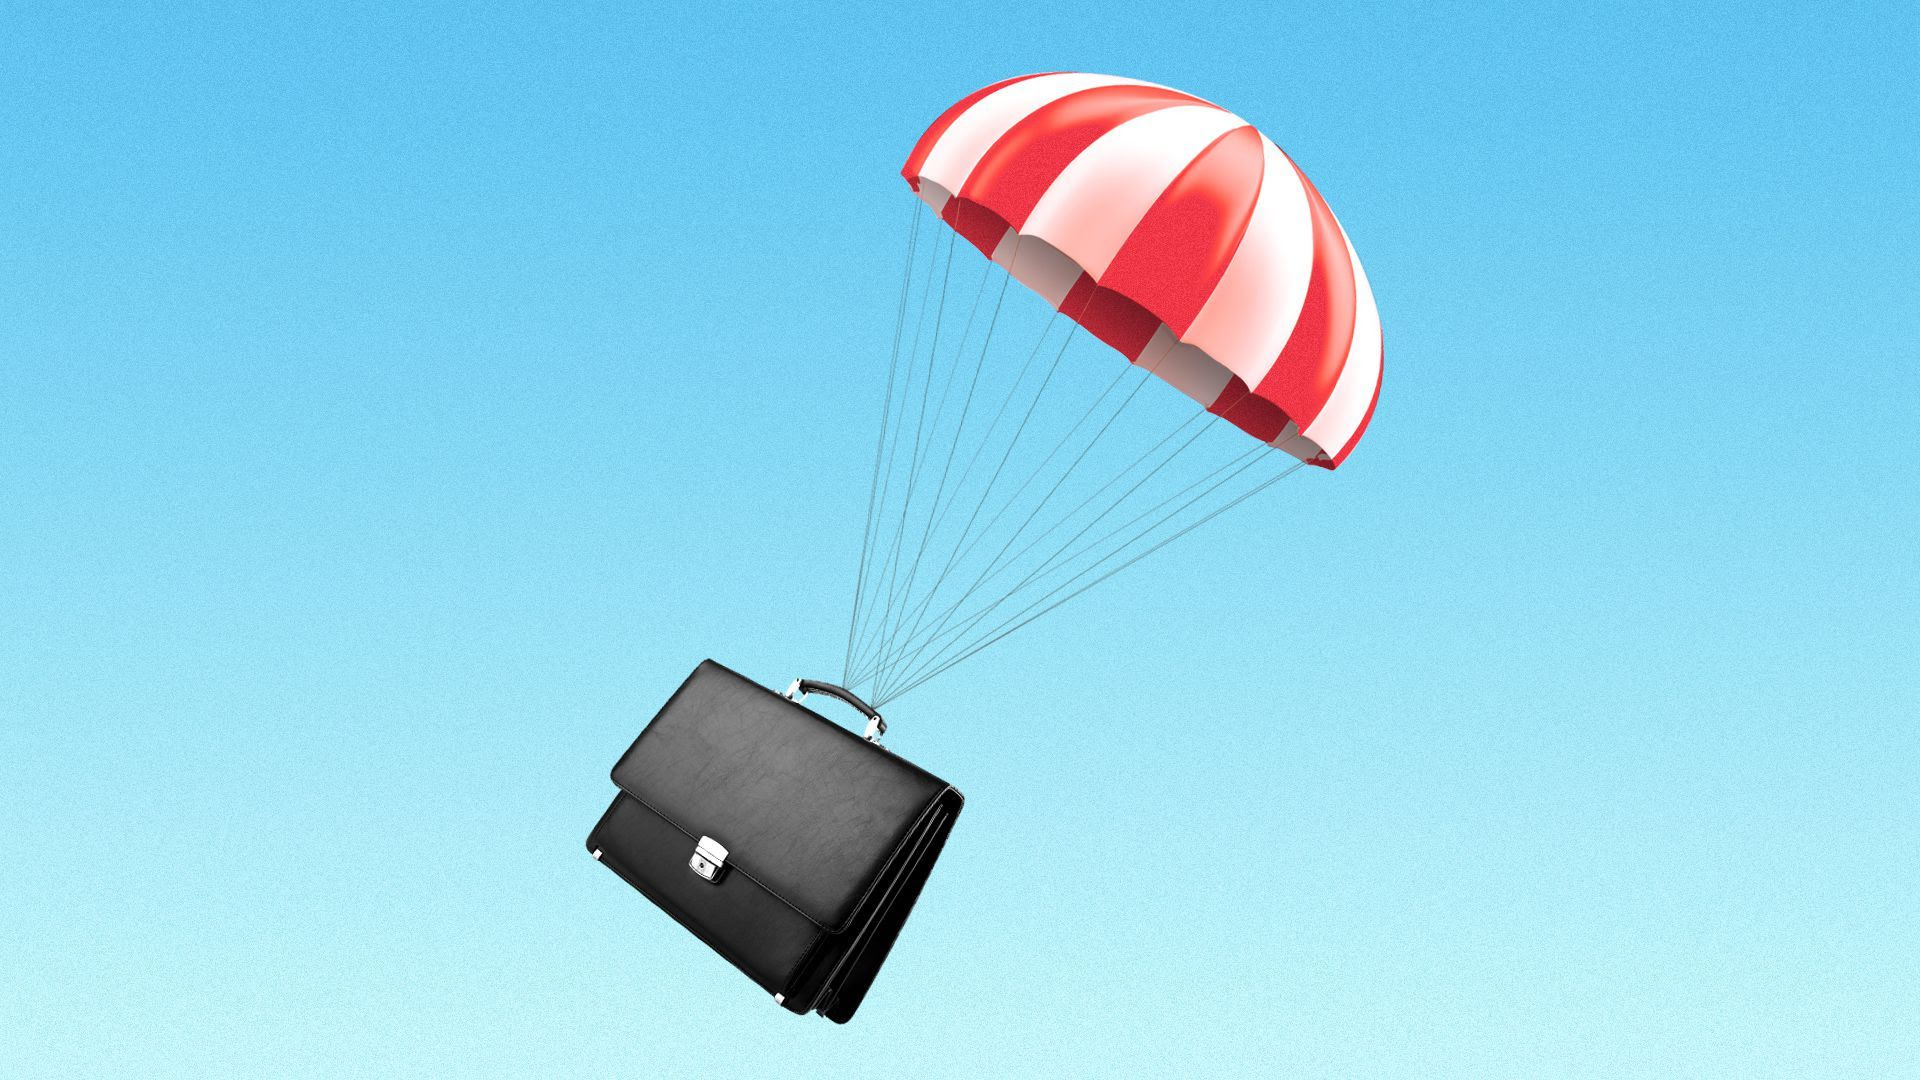 Illustration of a suitcase floating down with a parachute